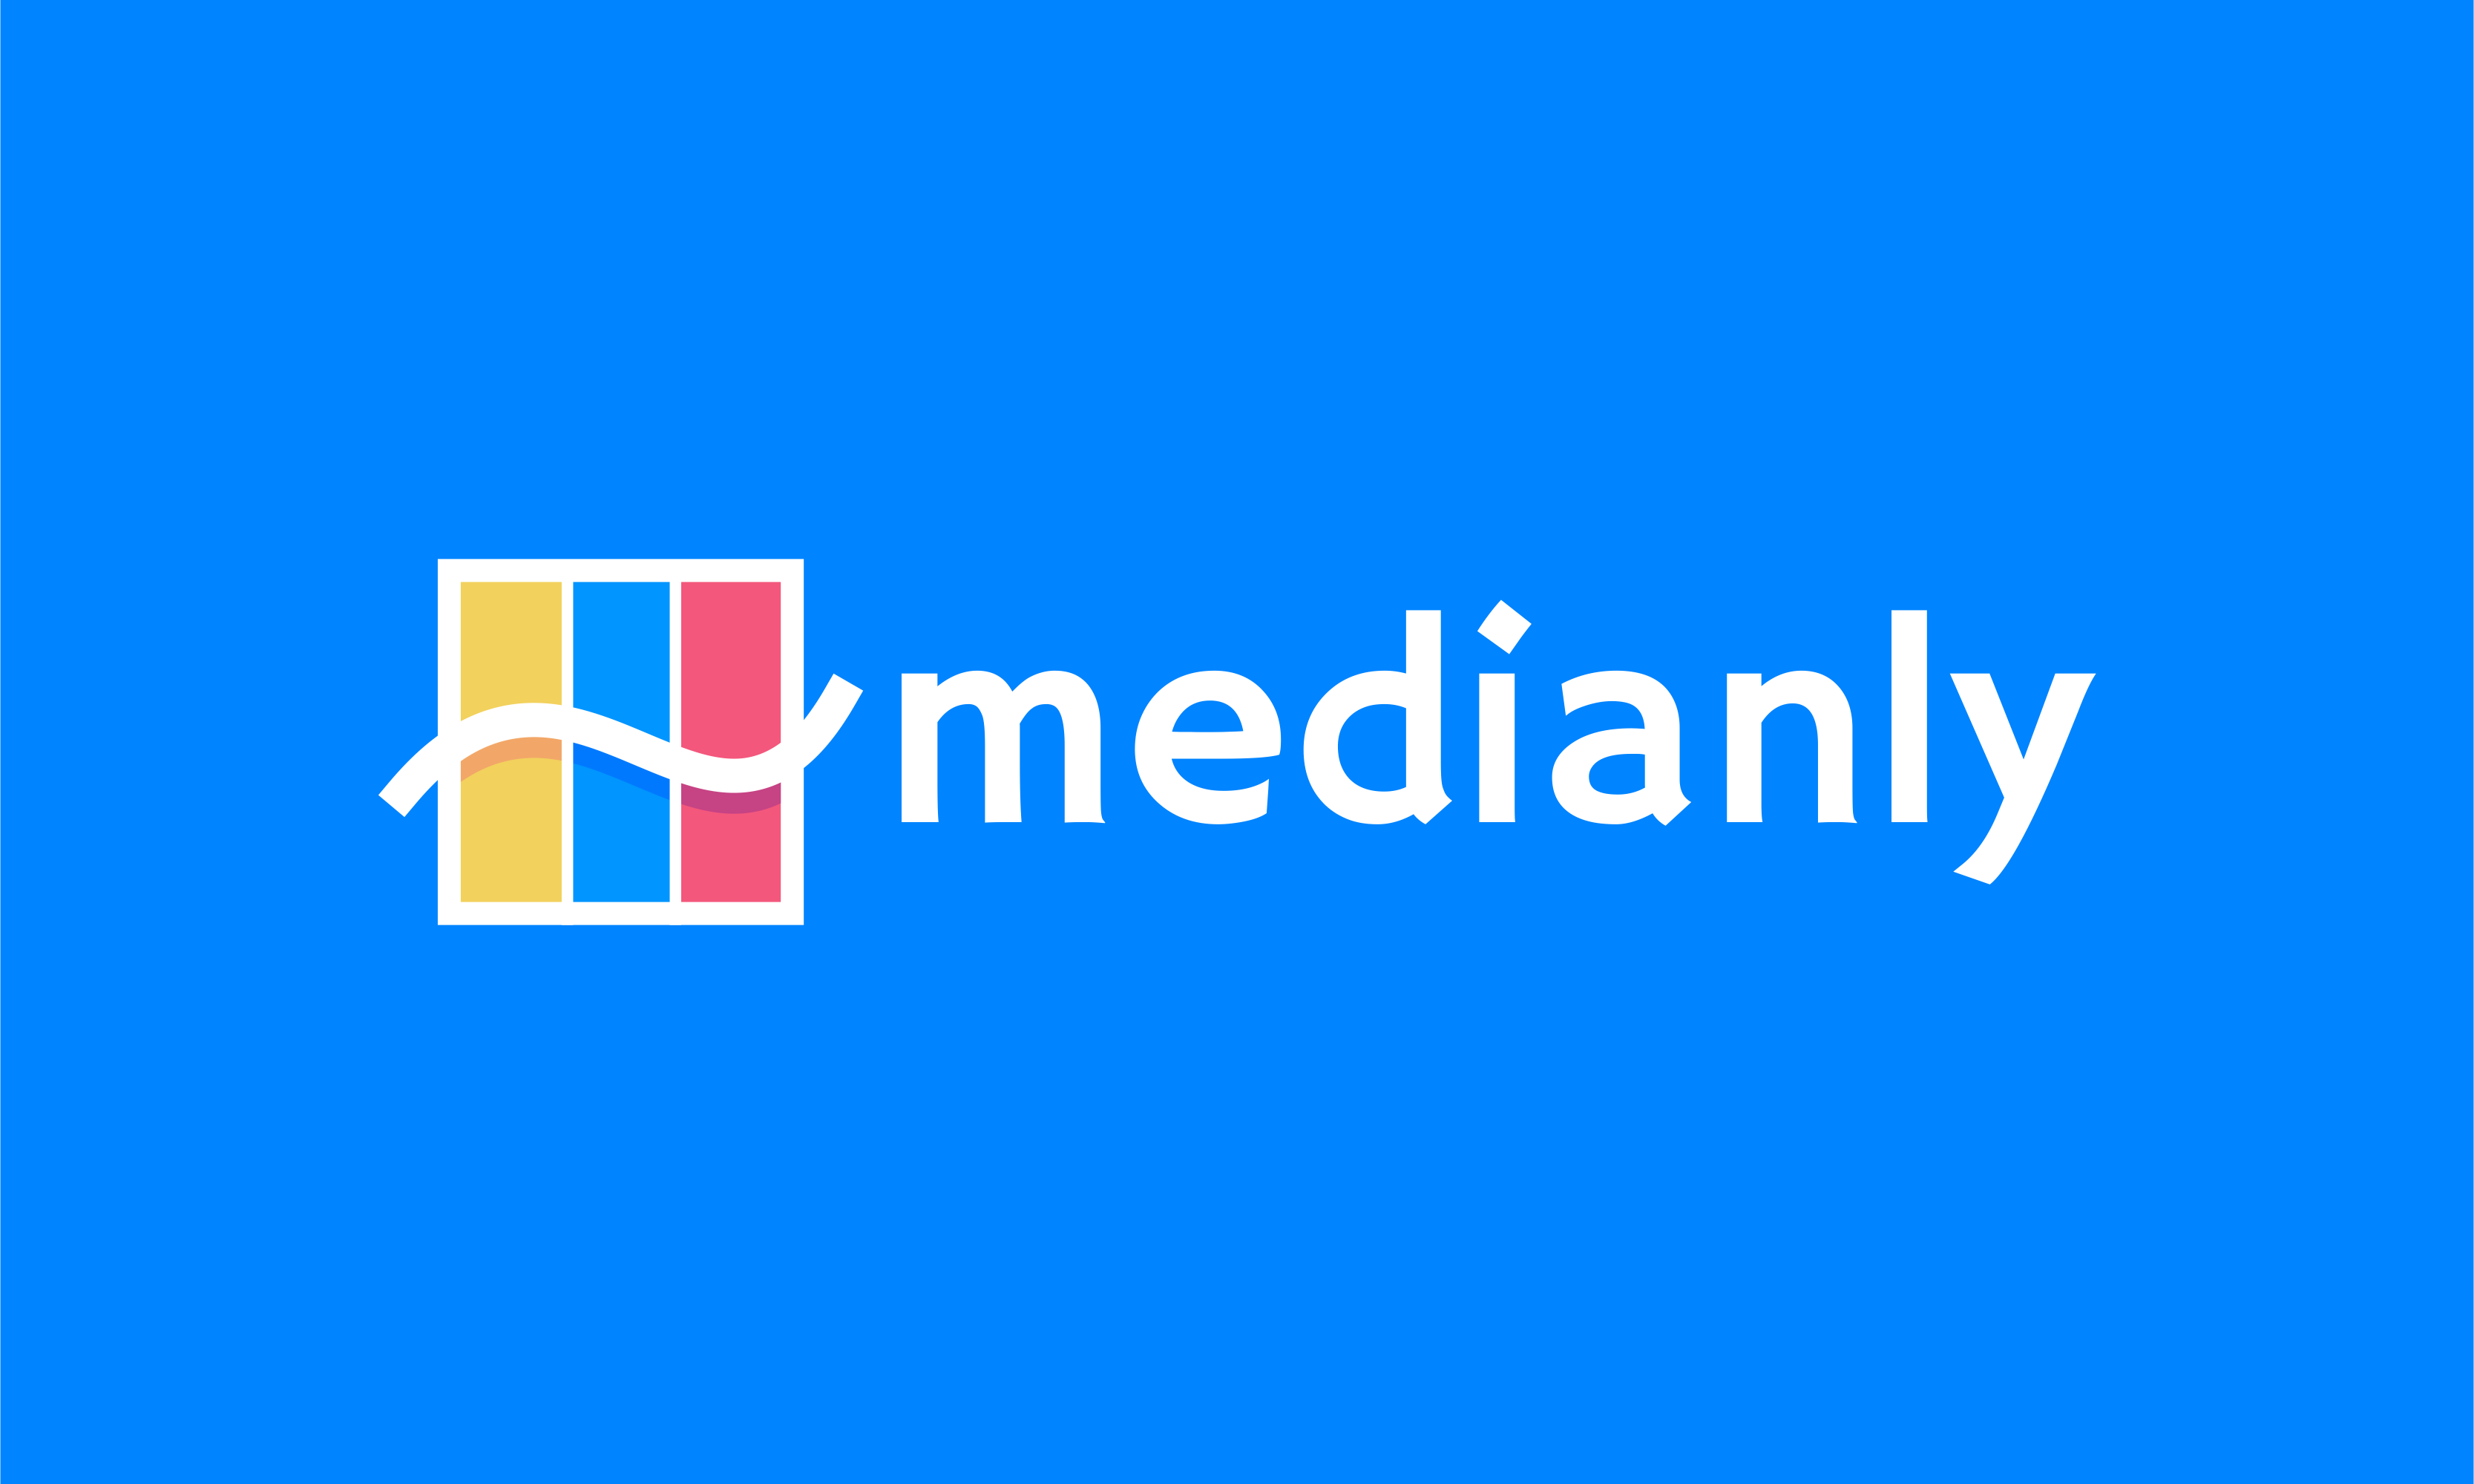 Medianly - Media product name for sale